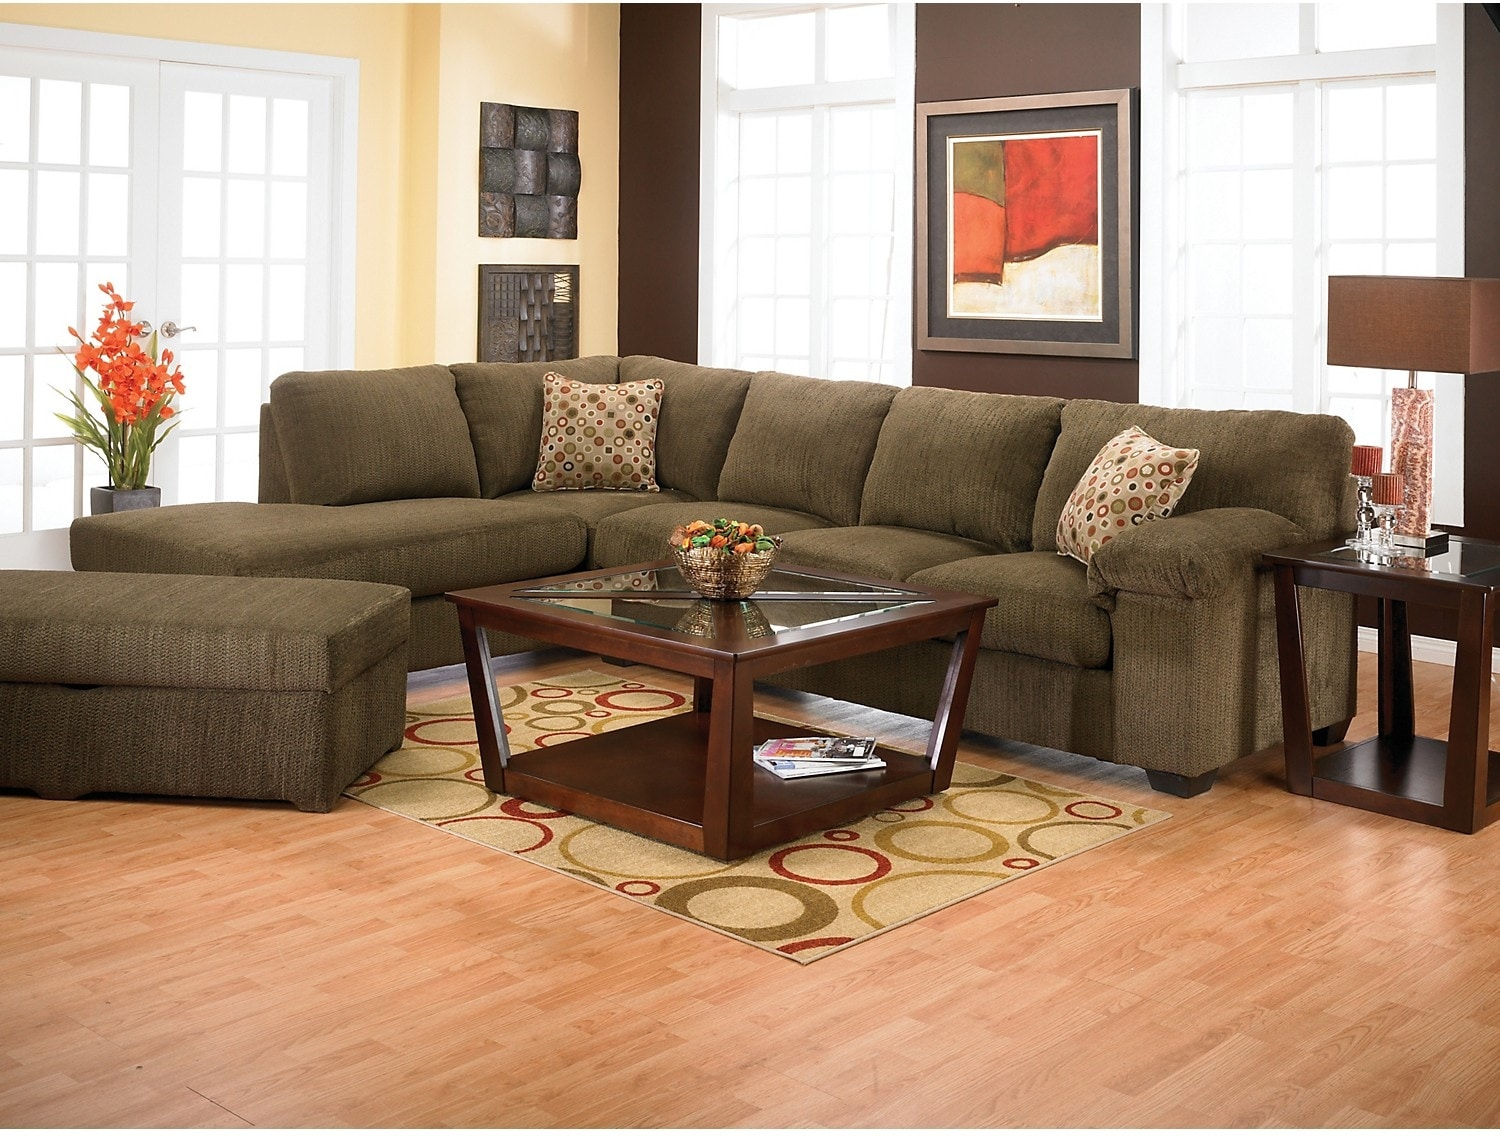 Morty chenille sectional with left chaise brown the brick for Brown sectional sofa with chaise